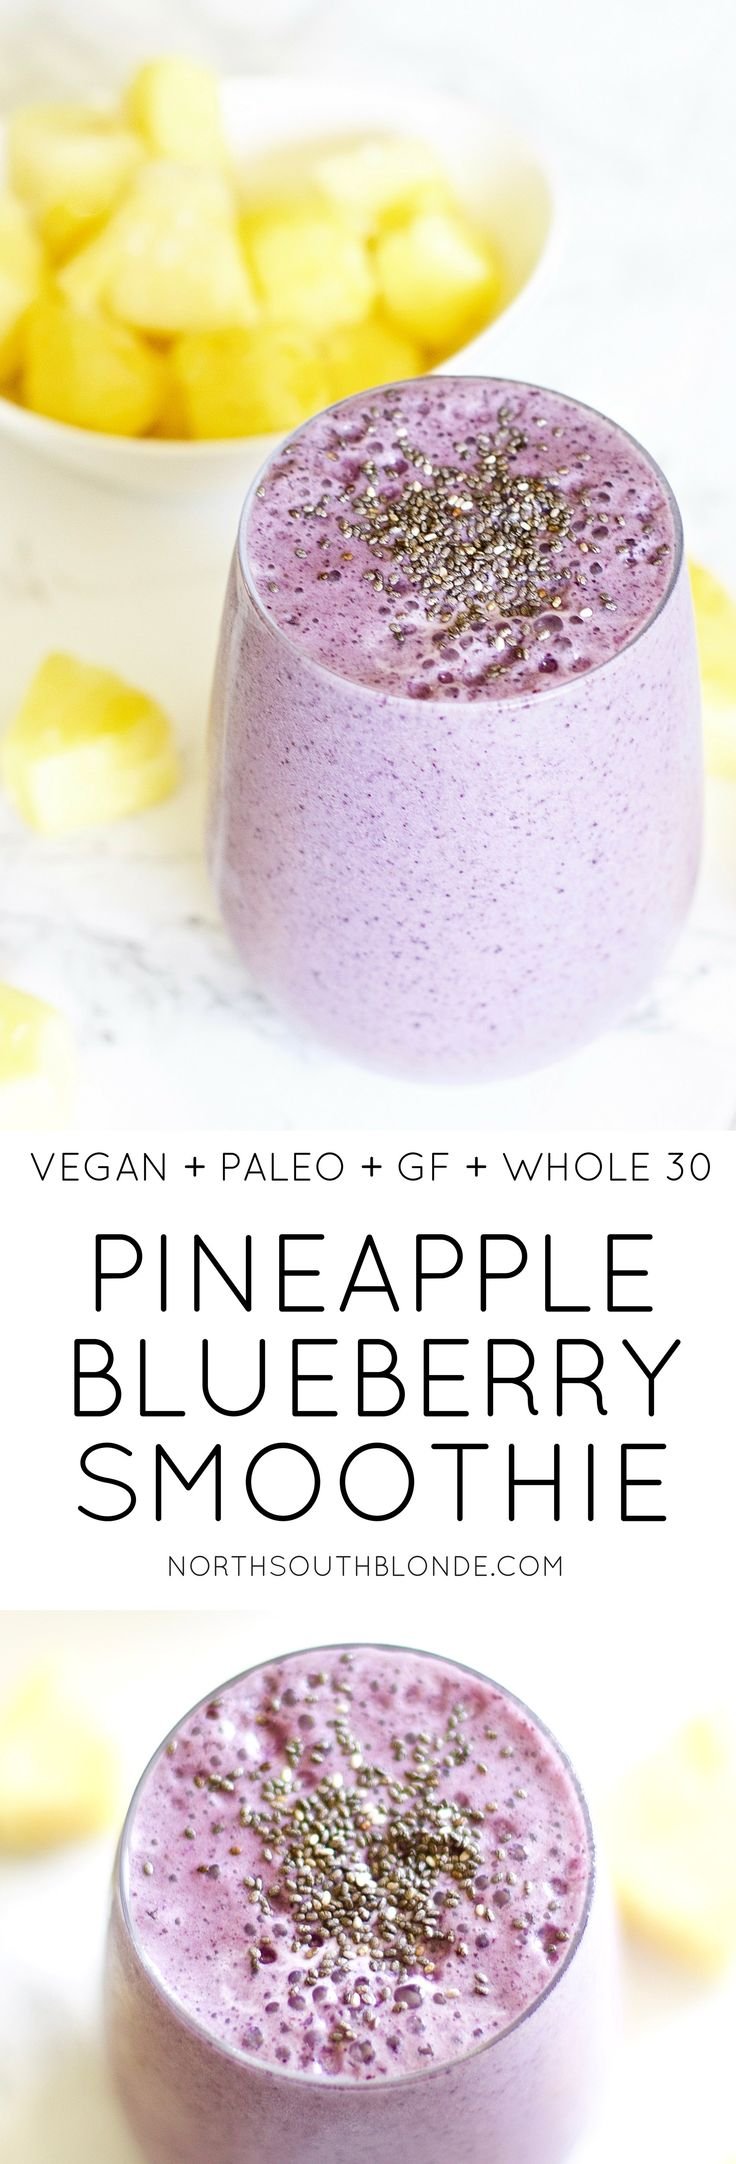 A tropical drink that can be enjoyed all year around. It's refreshing, full of antioxidants that nourishes the body for optimal health! Quick and easy, involving only a few ingredients, you too can look and feel your best this summer. Vegan | Paleo | Whole 30 | Gluten-Free | Organic | Wholesome | Summer Smoothie | Chia Seeds | Weight Loss | Hair Growth | Nail Growth | Post Workout | Fitness | Baby & Toddler Food Smoothie | Refreshing Drink | Summer Drinks | Breakfast Smoothie | Healthy…